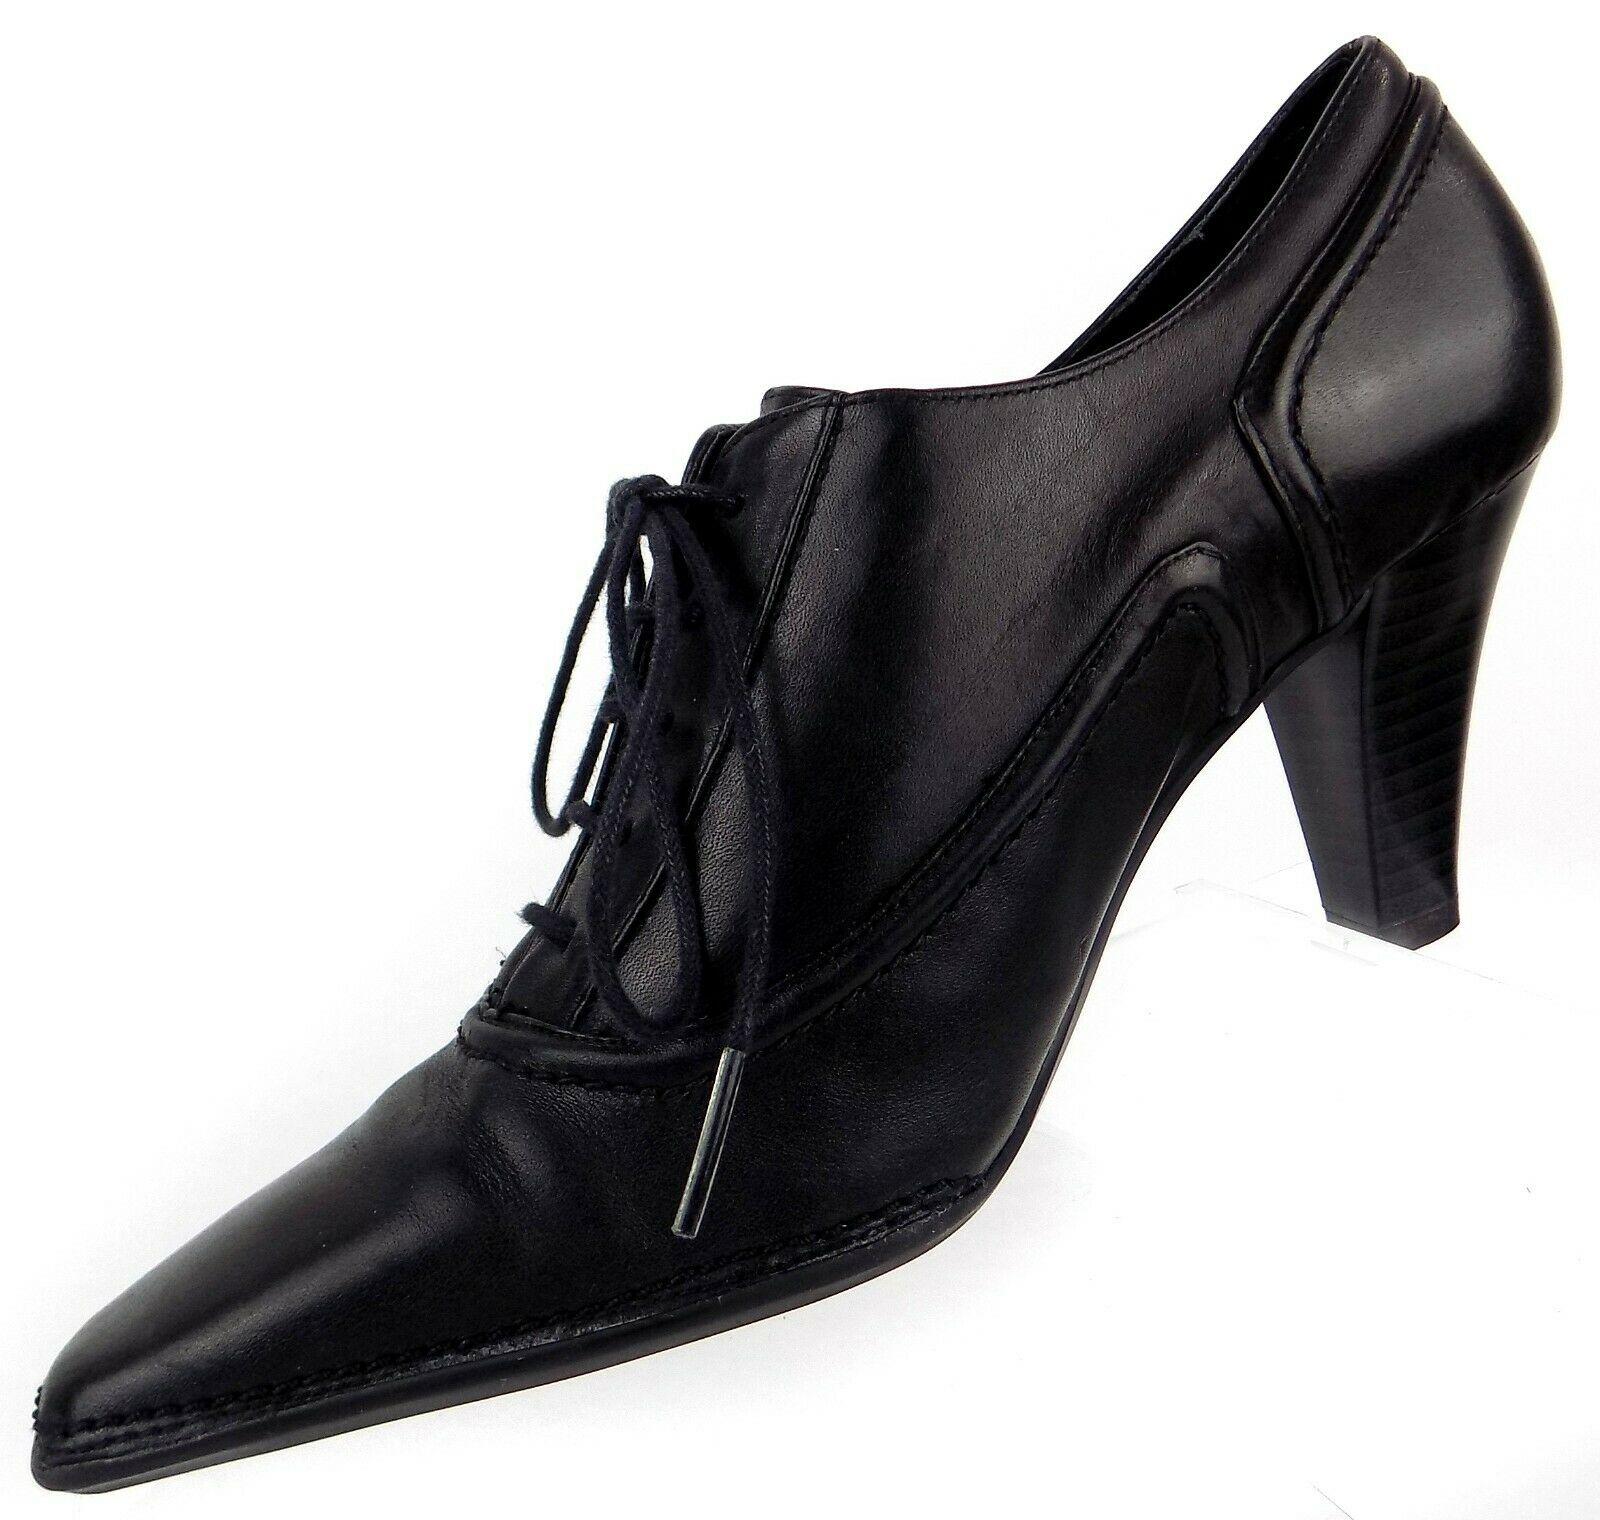 Whats What by Aerosoles Womens Heels Size 6M Black Leather Snip Toe Granny Shoes